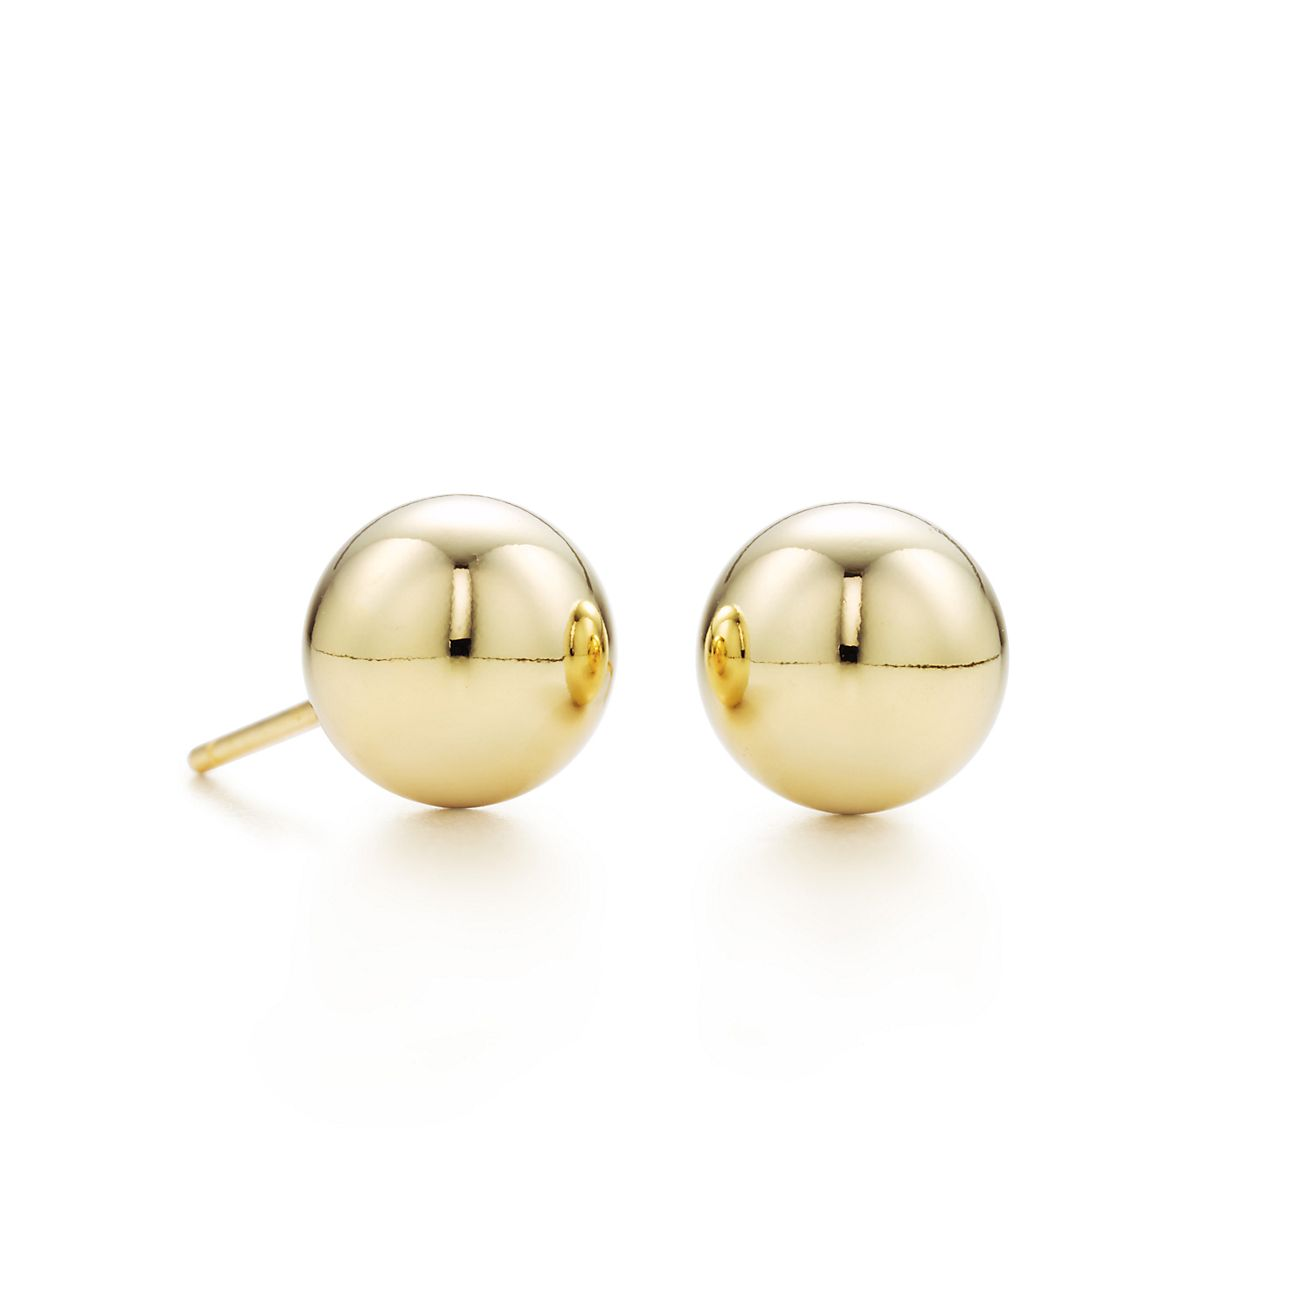 Tiffany City HardWear ball earrings in sterling silver - Size 8mm diameter Tiffany & Co.